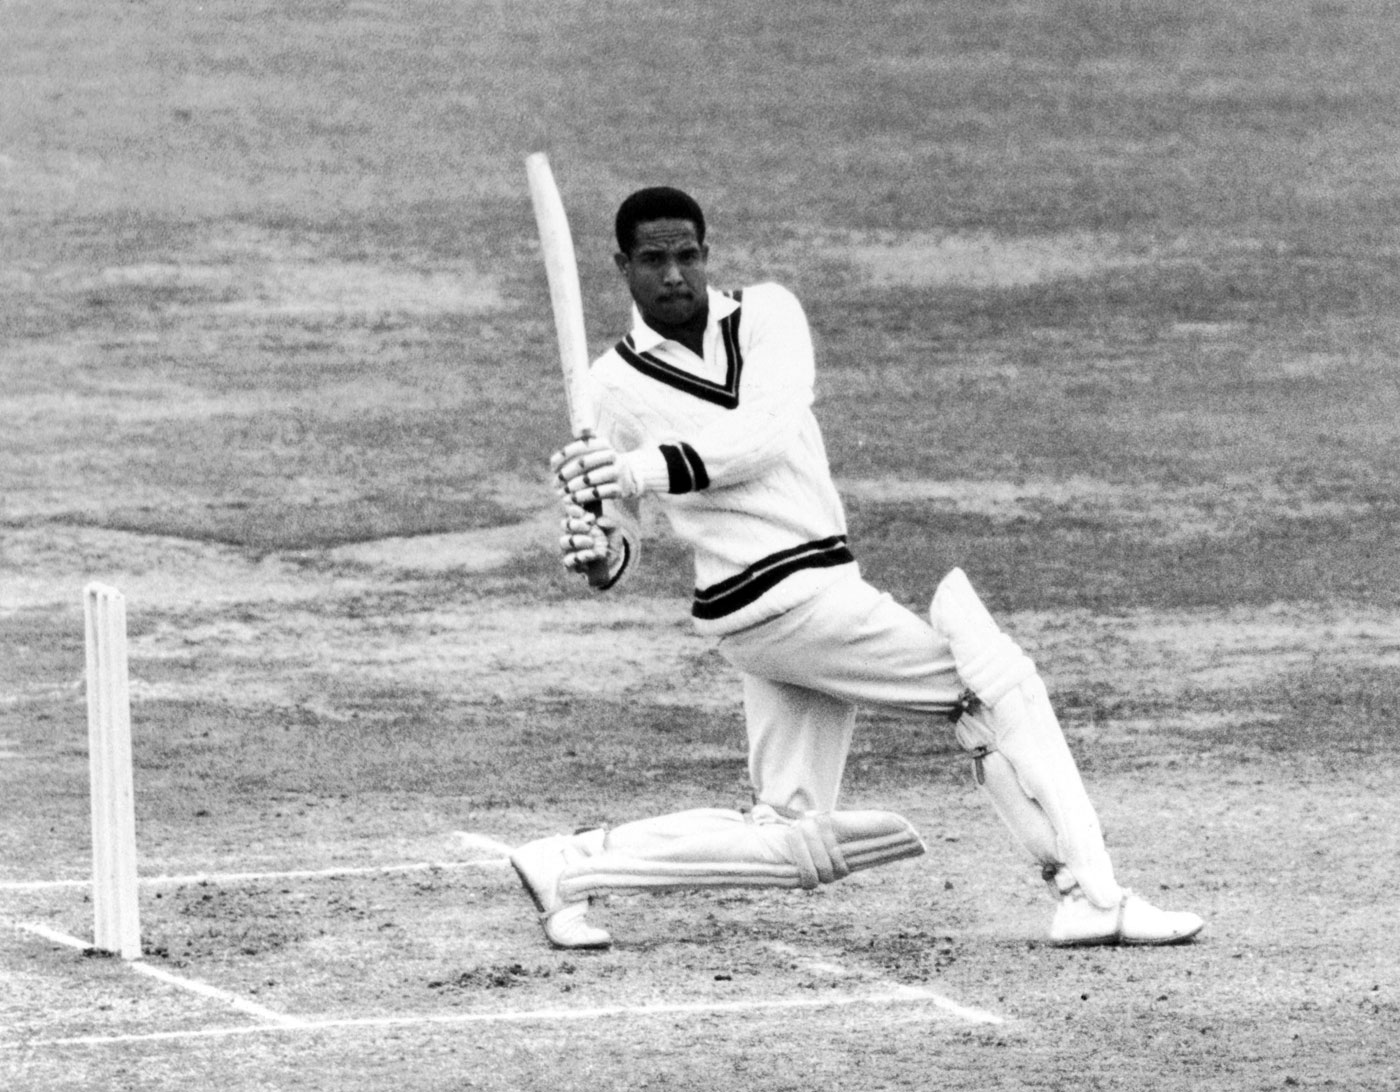 Garry Sobers minimal foot movement, great follow-through, the ball ricocheting off the boundary boards as not a man moved.